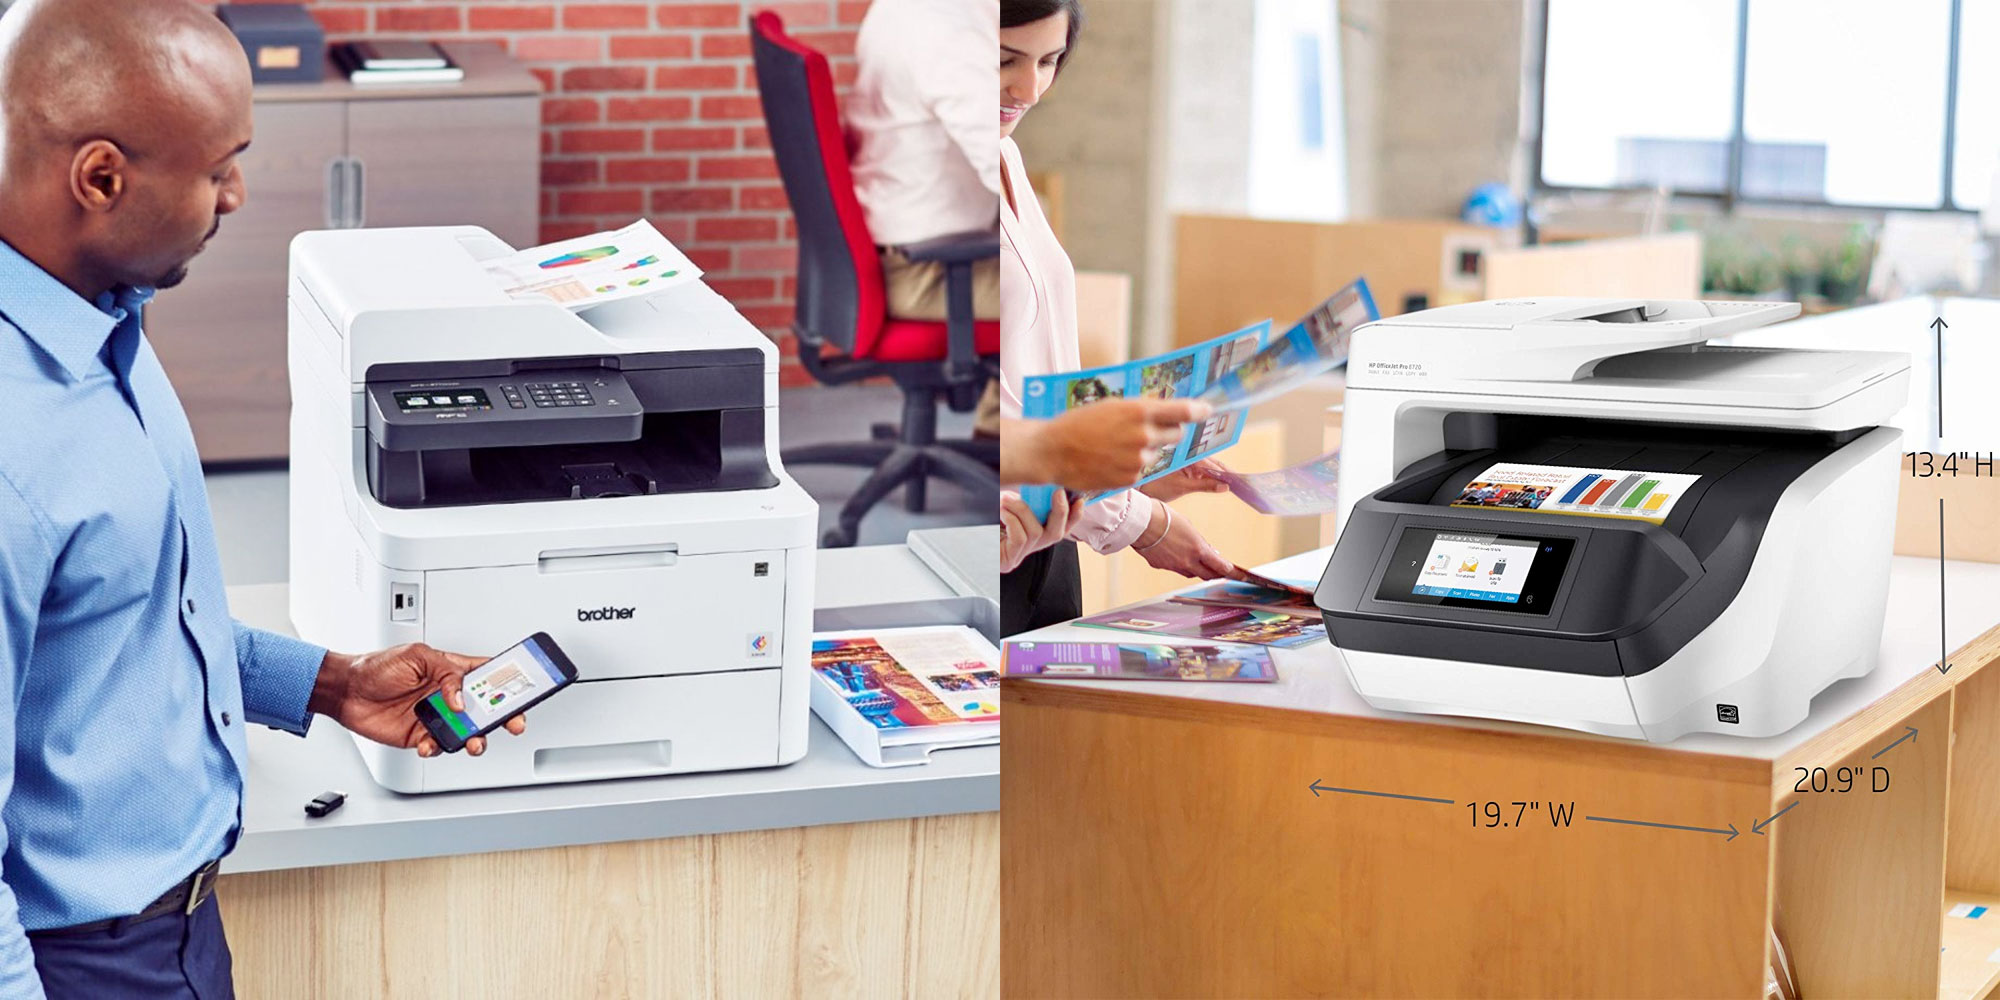 Enjoy AirPrint, color, scanning, more on Brother's high-end laser AiO printer: $275, more from $99